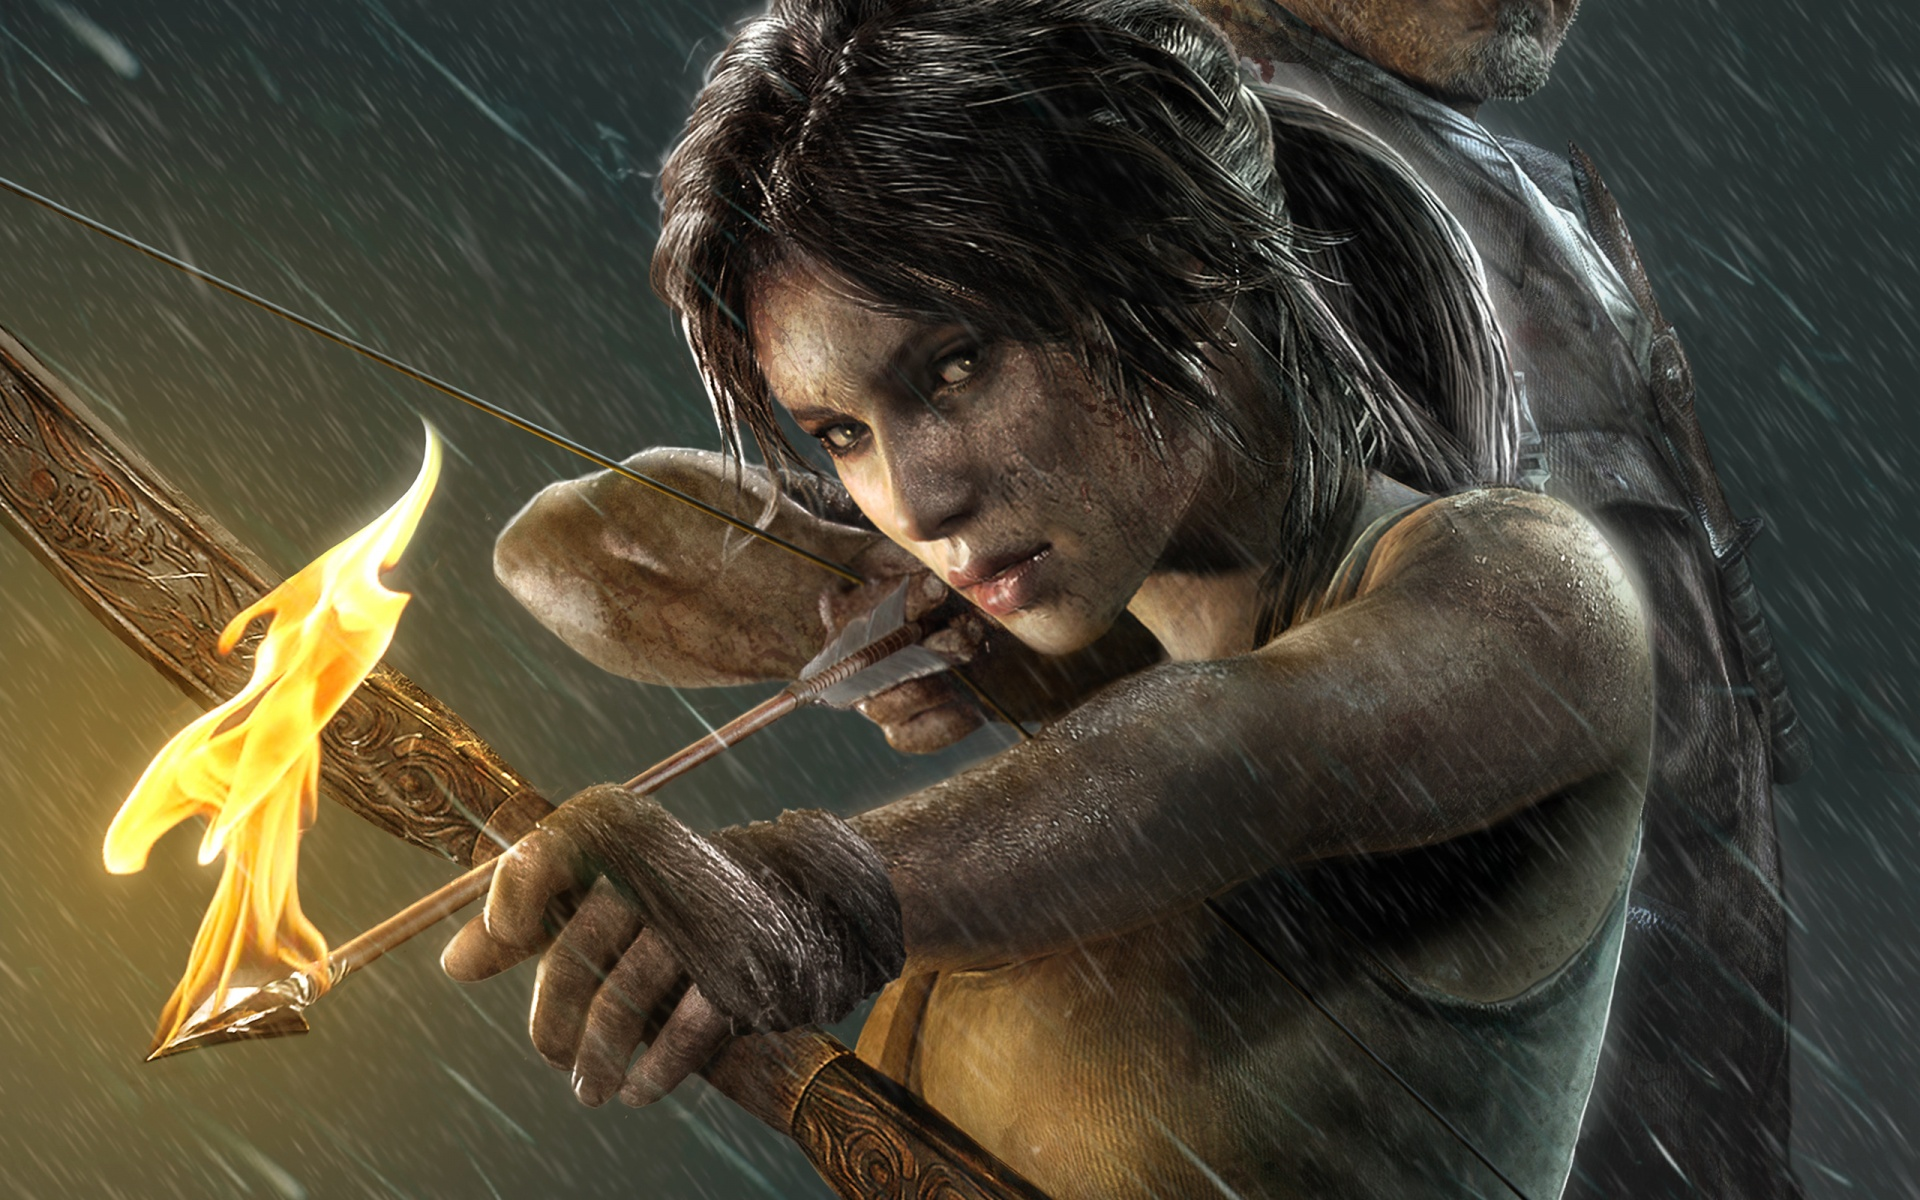 Lara Croft in new Tomb Raider